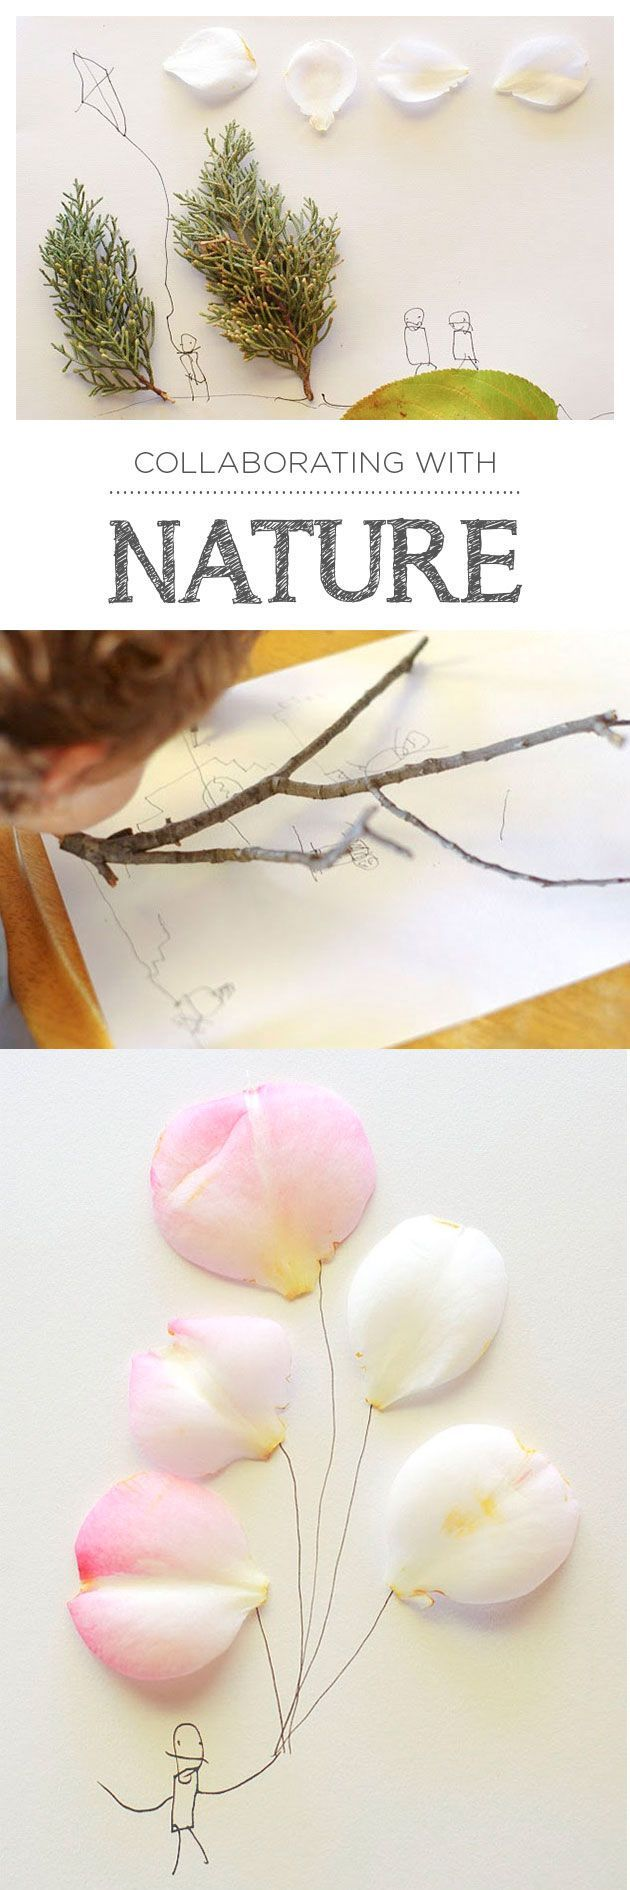 awesome A fun way to bring together an appreciation of nature and our creative spirits&#...